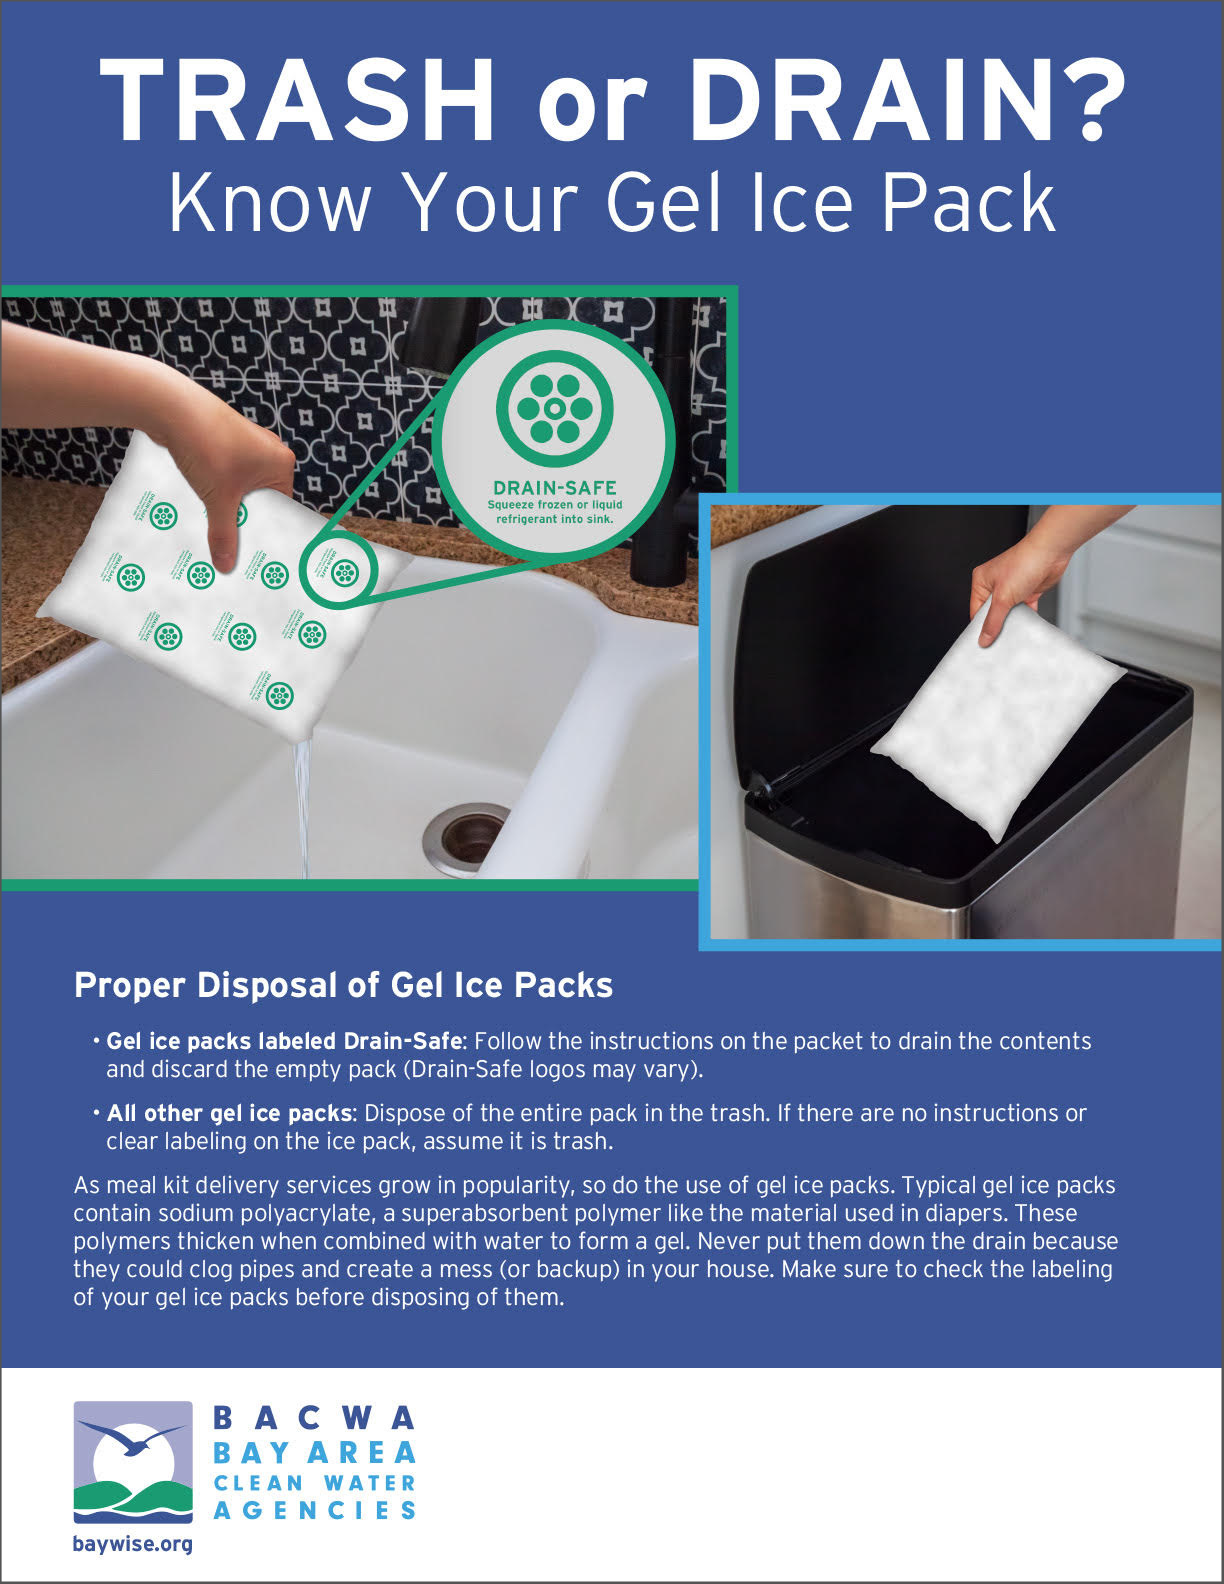 gel pack recycle, how to properly dispose and discard gel pack